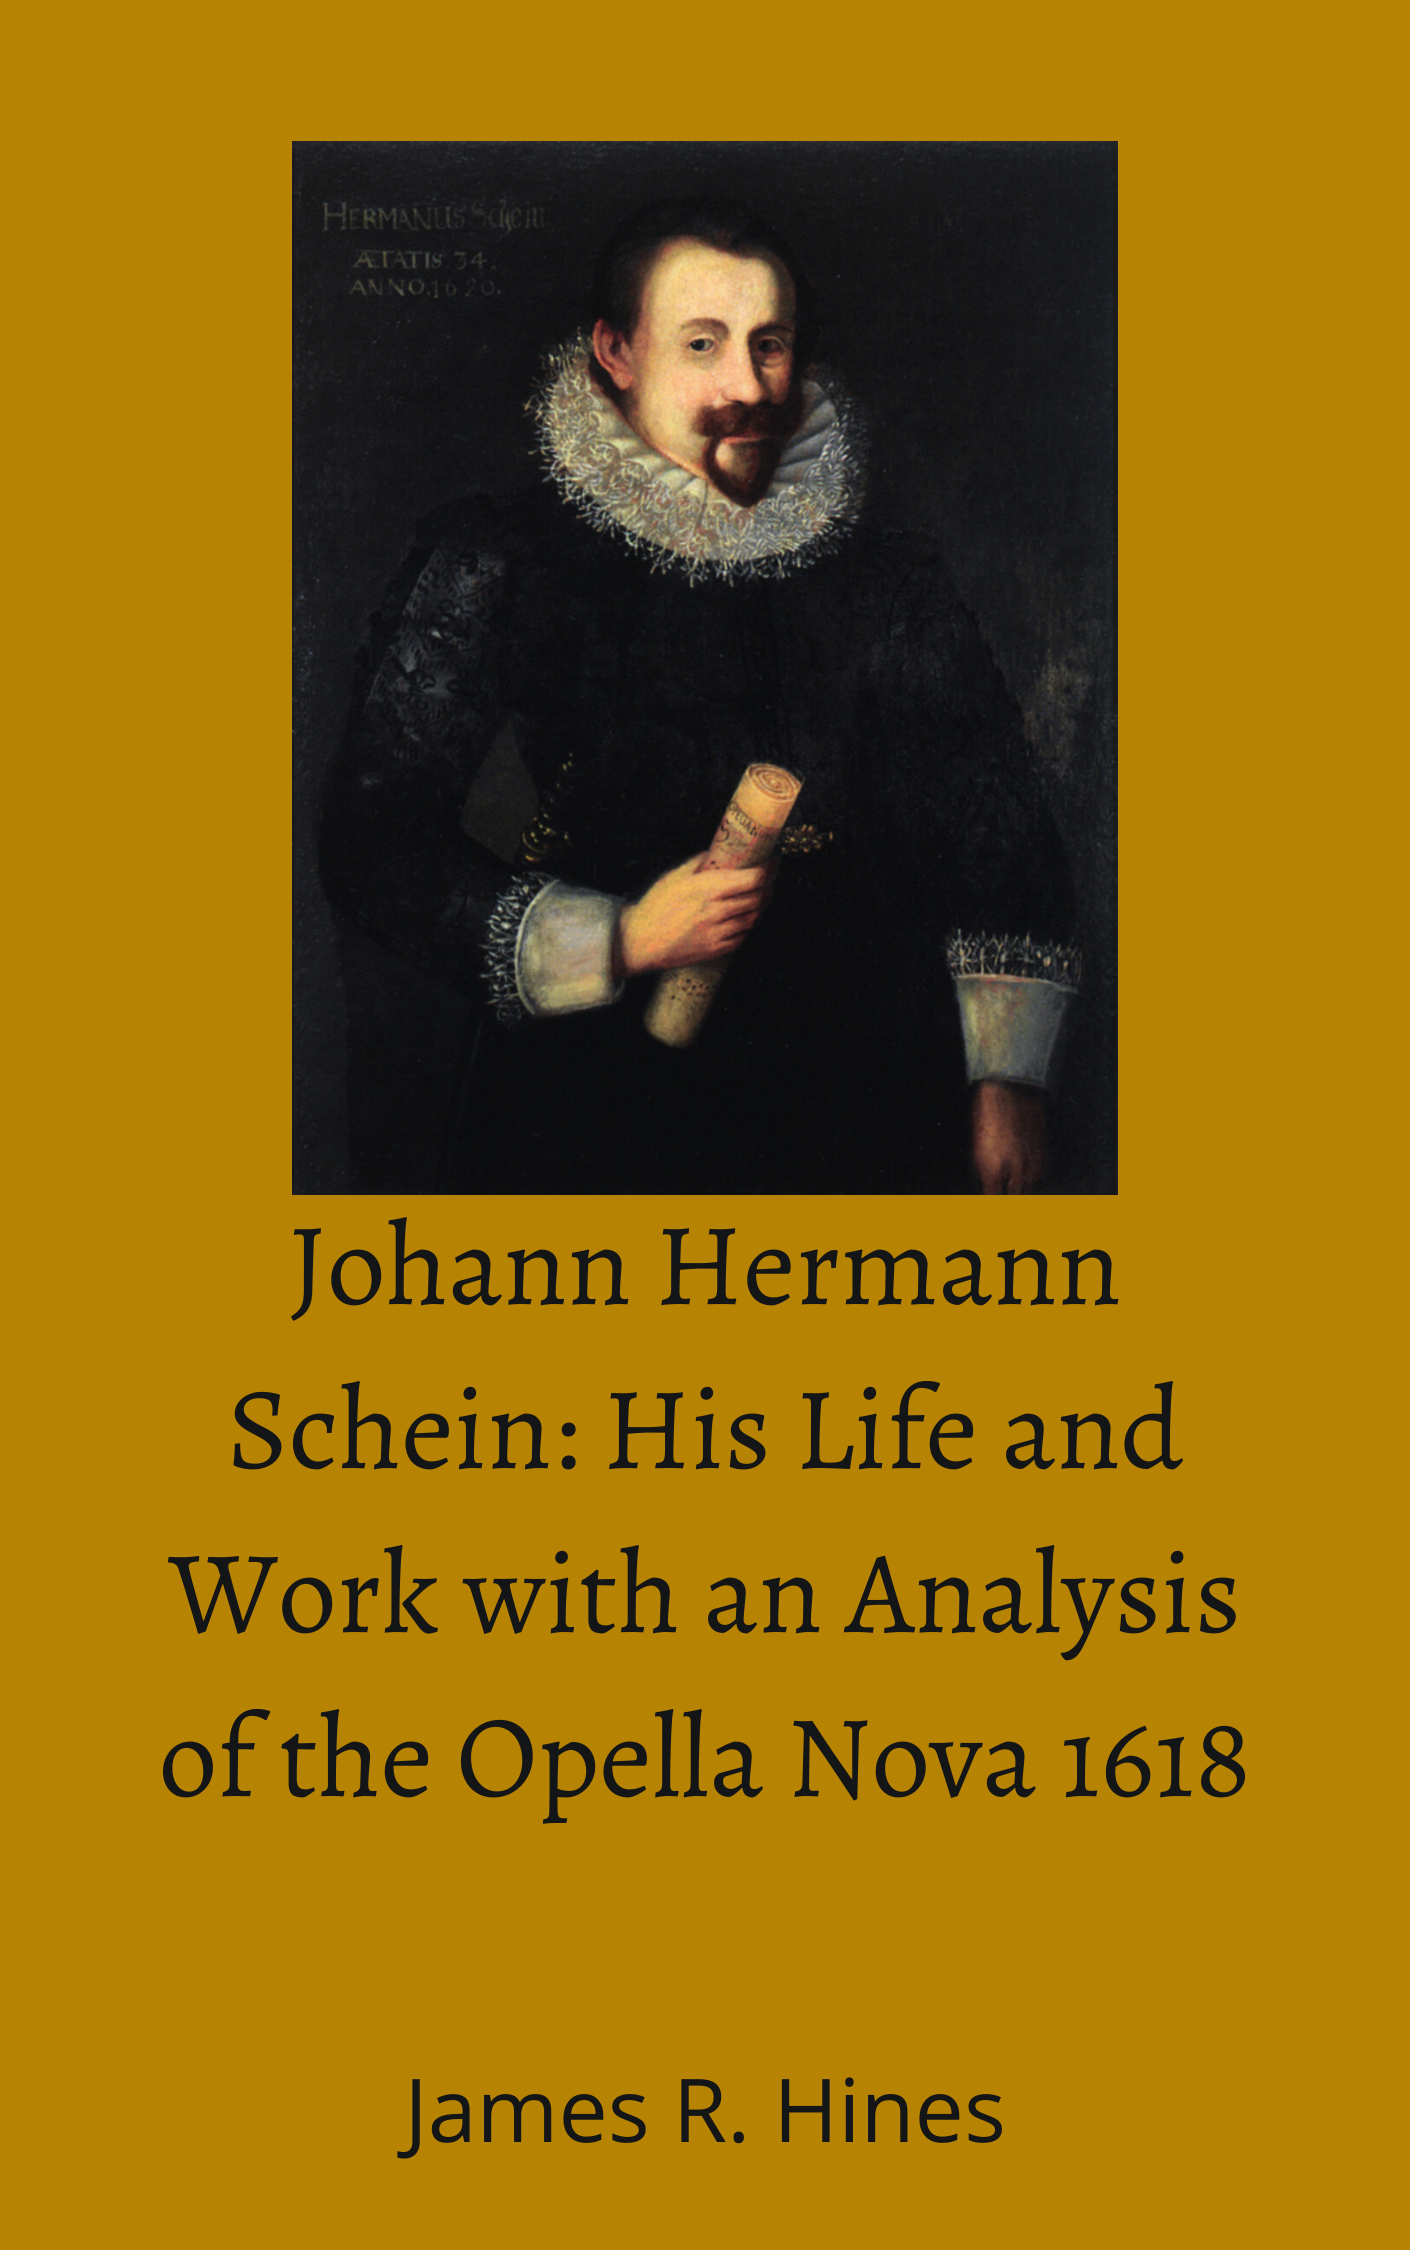 Johann Hermann Schein: His Life and Work with an Analysis of the Opella Nova 1618